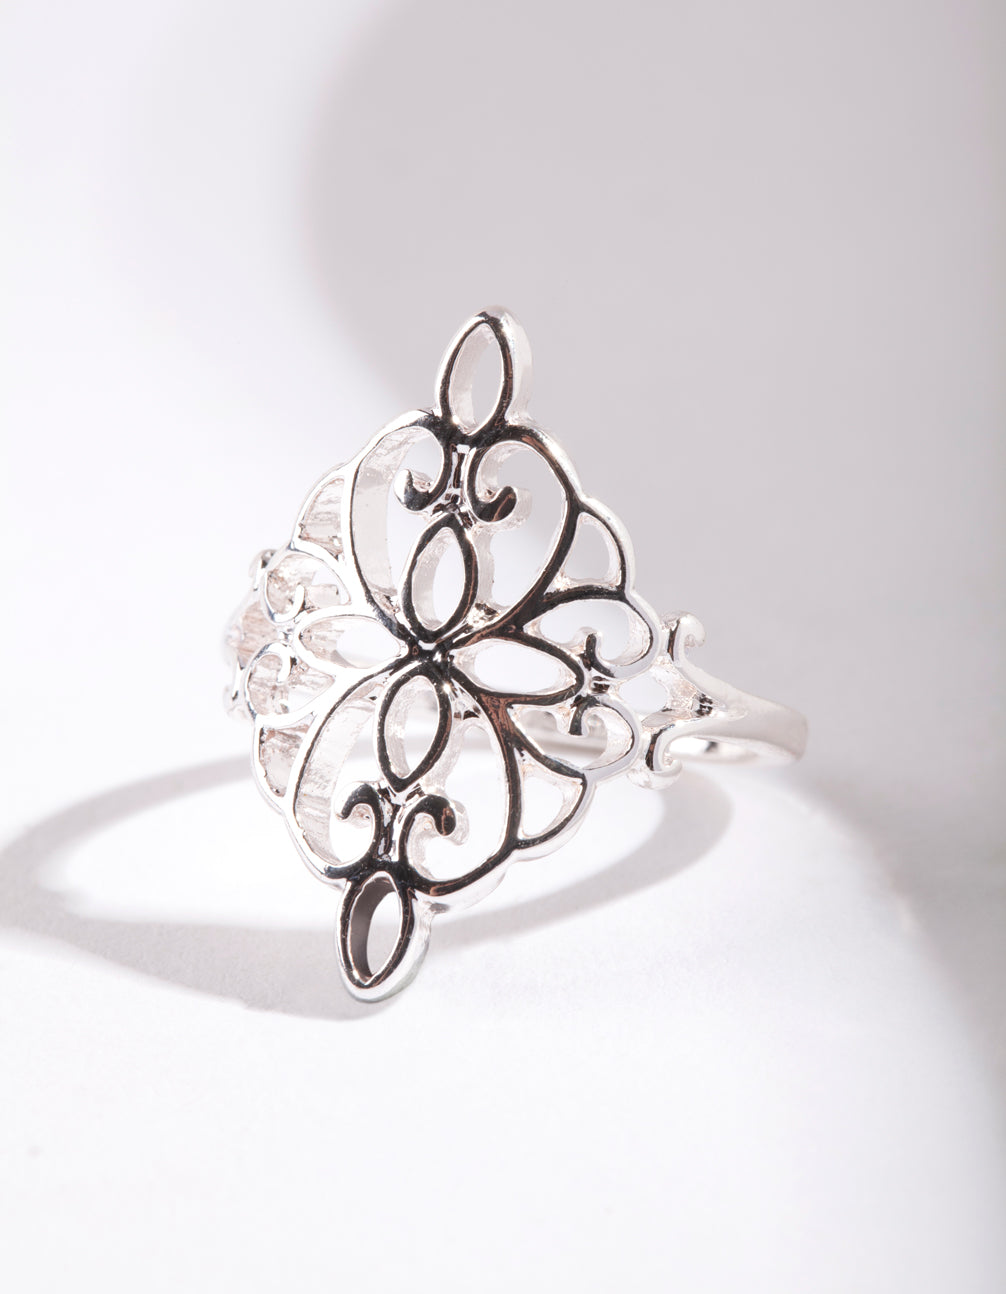 Silver Metal Filigree Ring